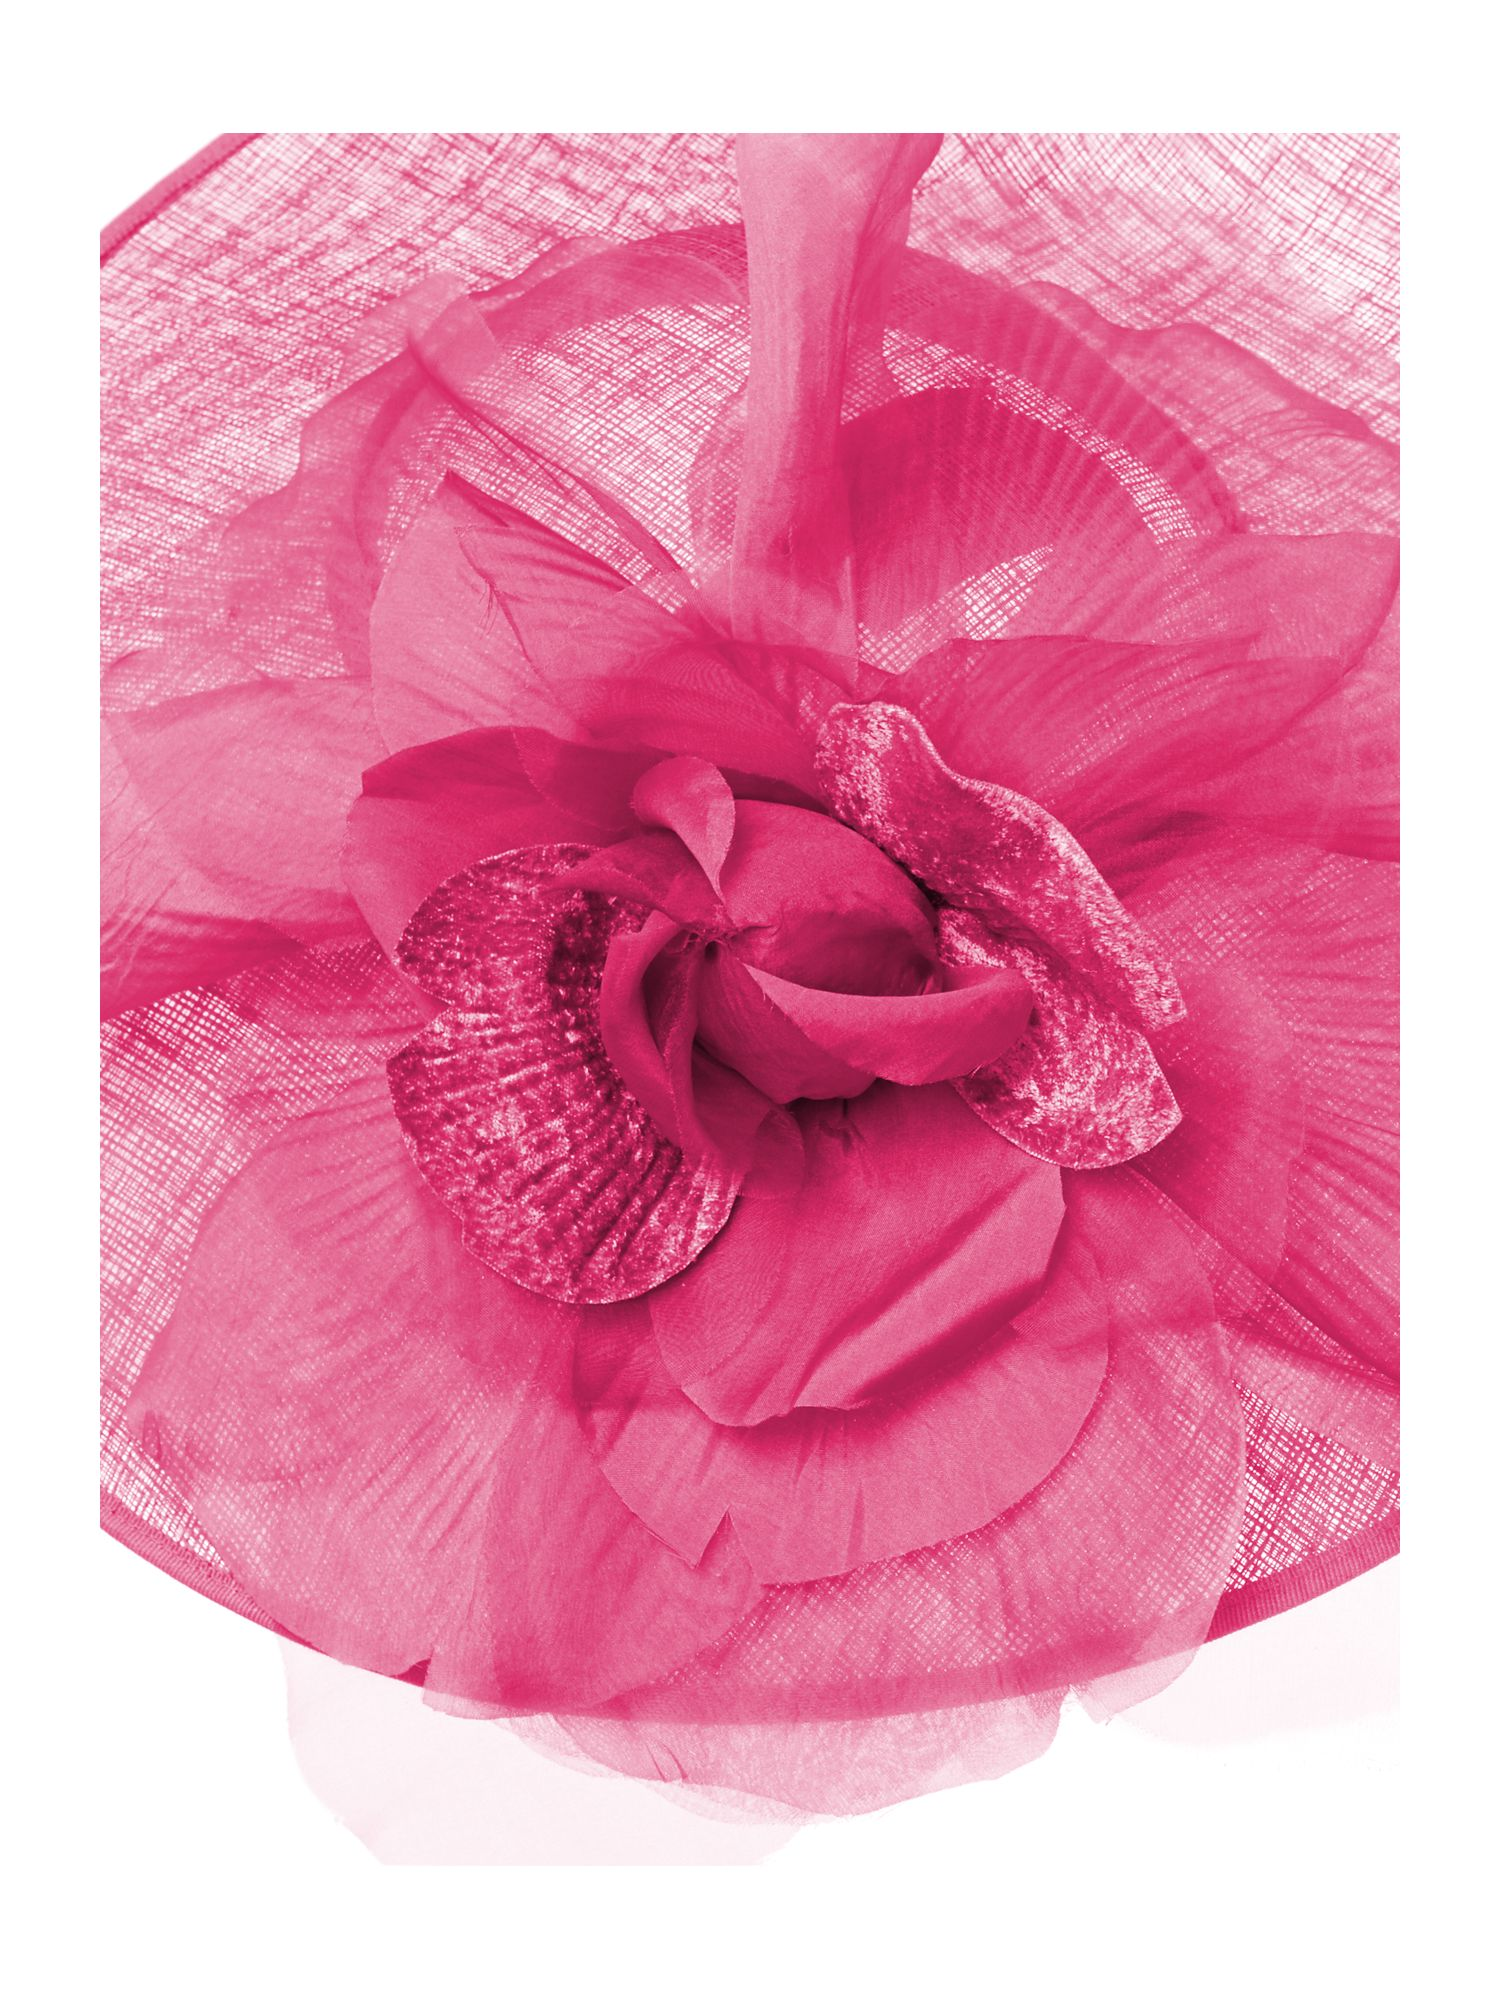 Flower and organza saucer